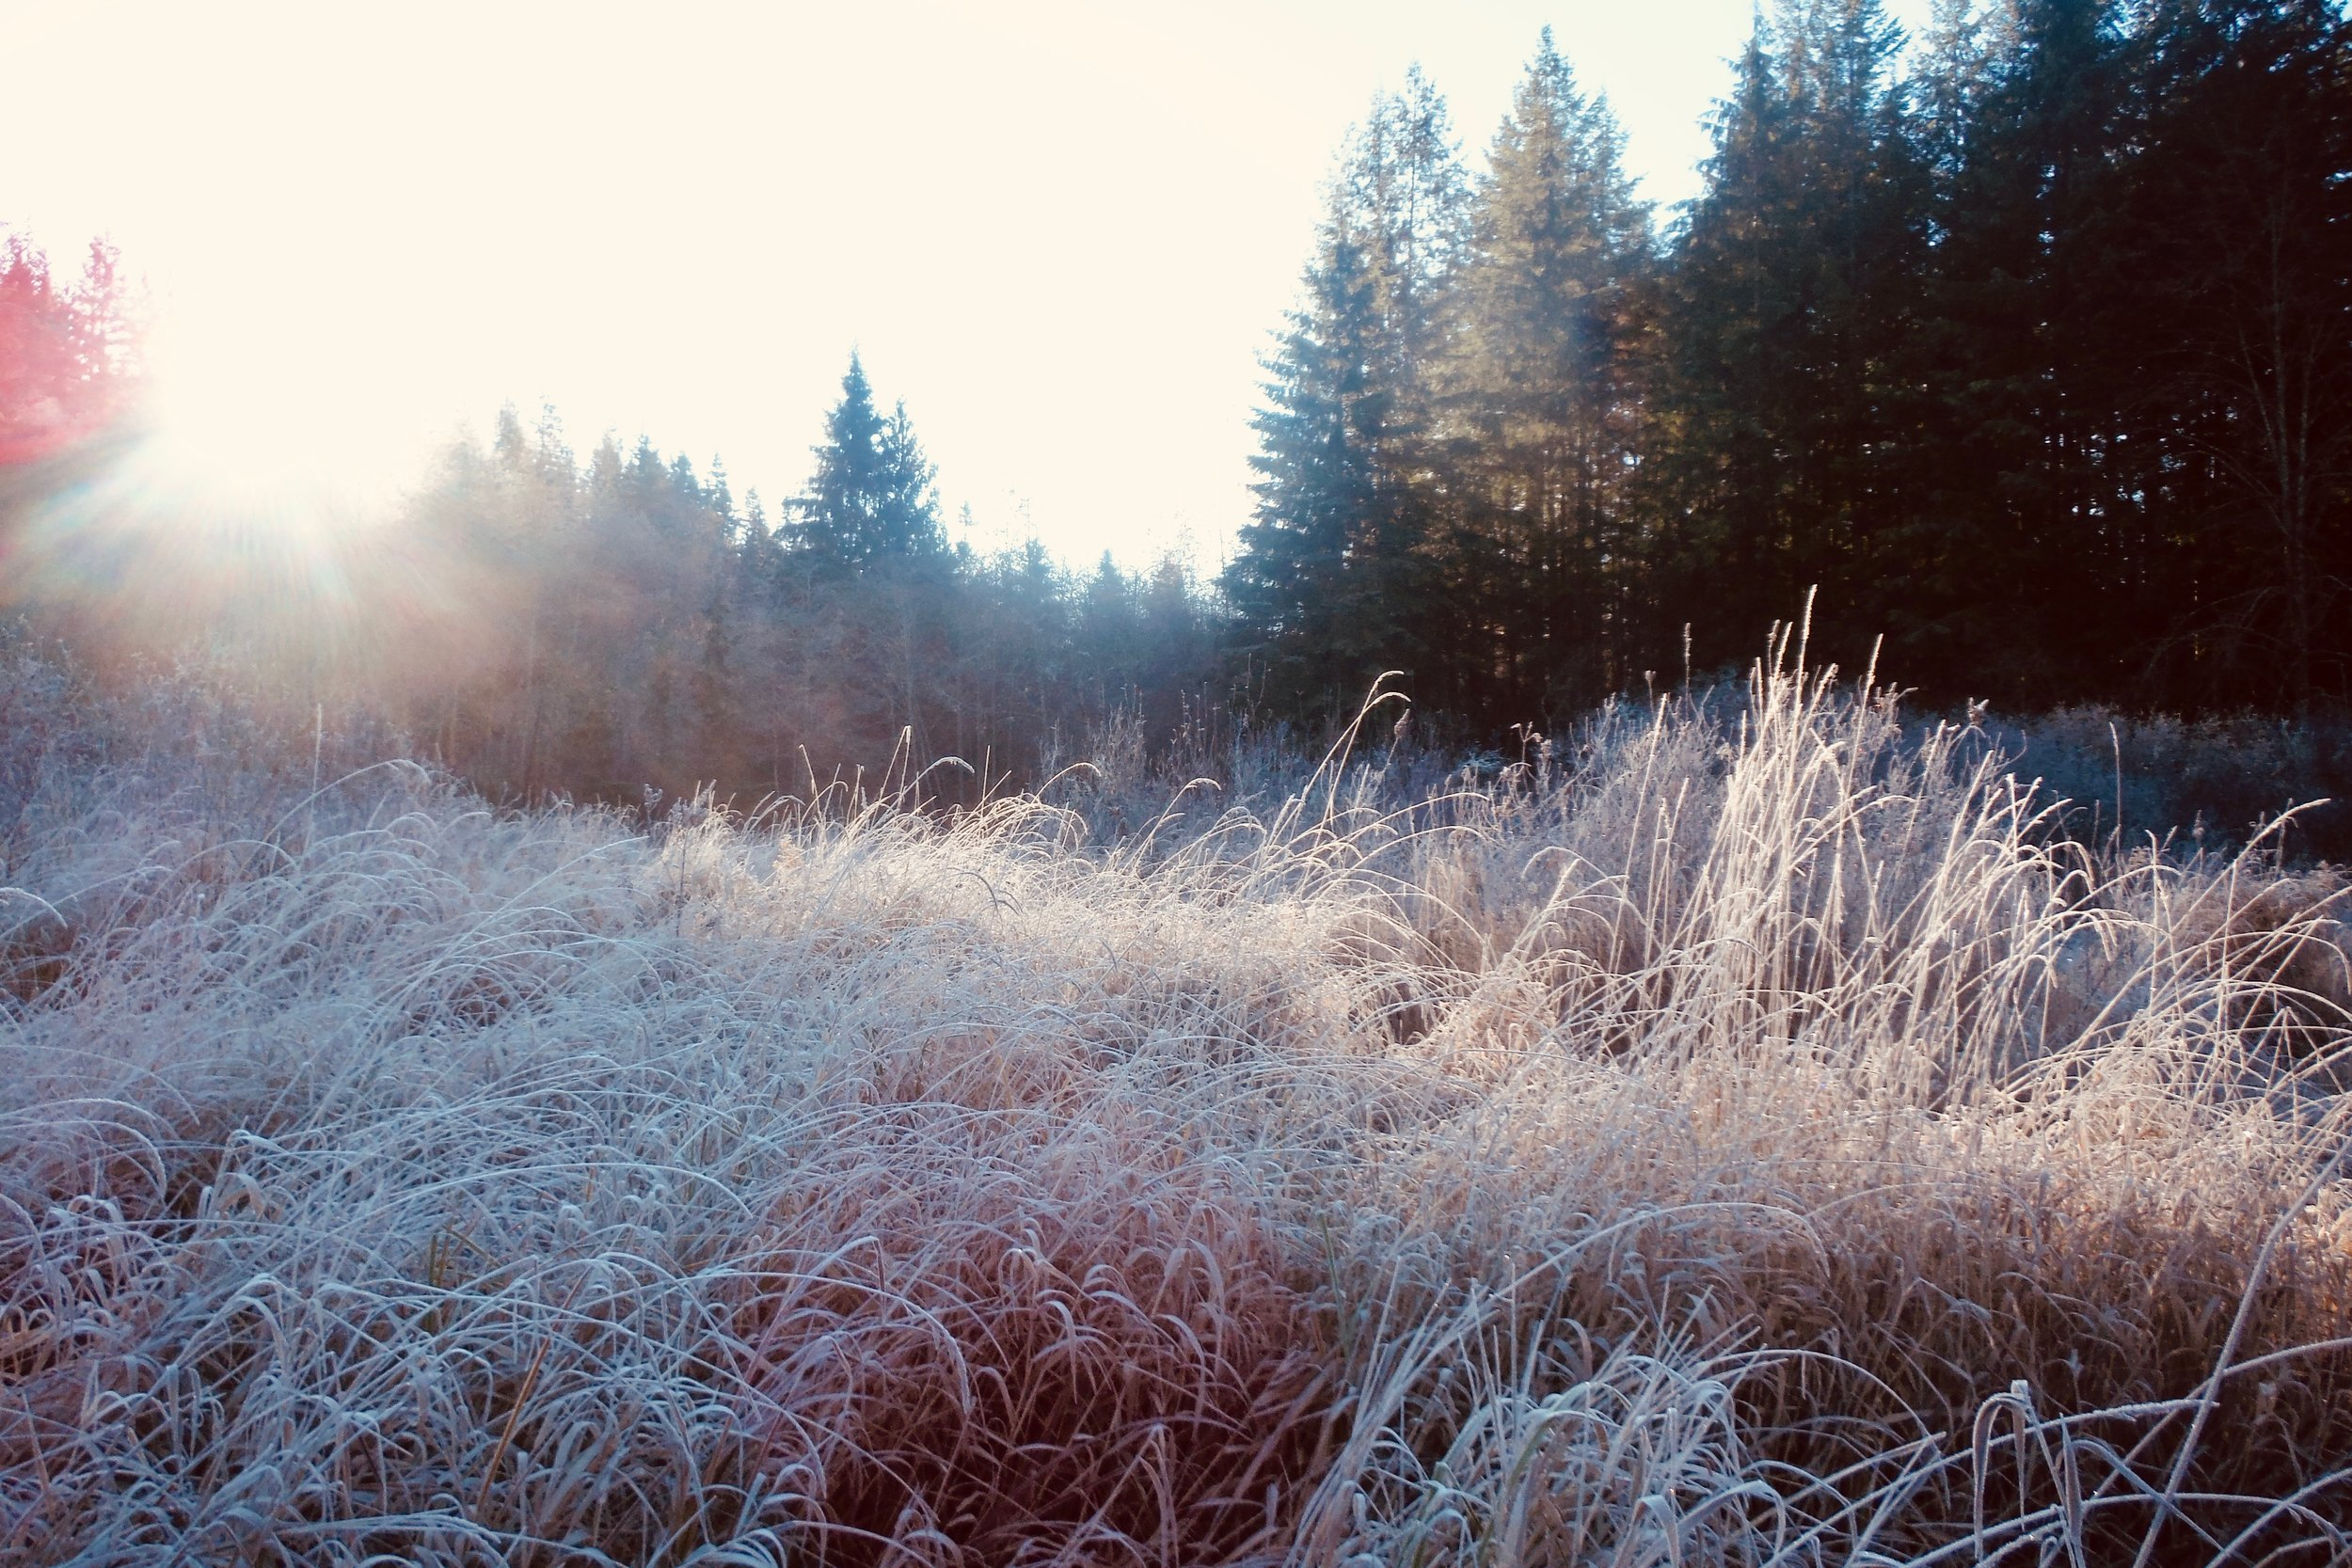 Frosty Reed Canary Grass